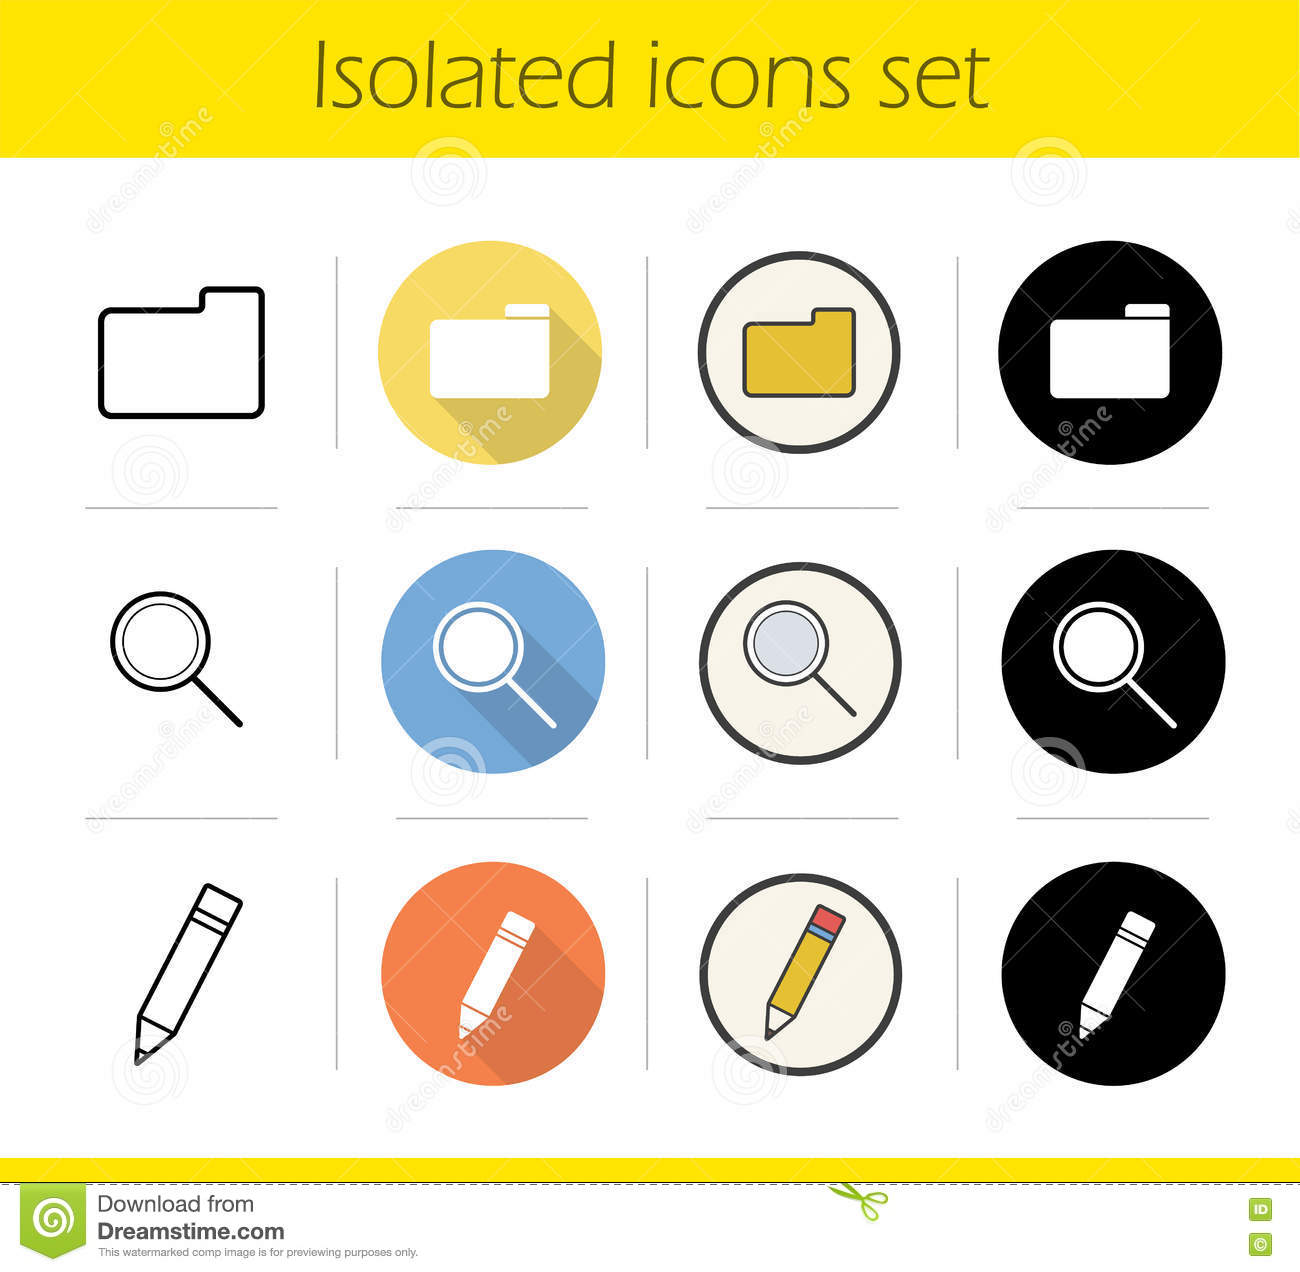 file manager icons set stock vector illustration of object 80805199 rh dreamstime com